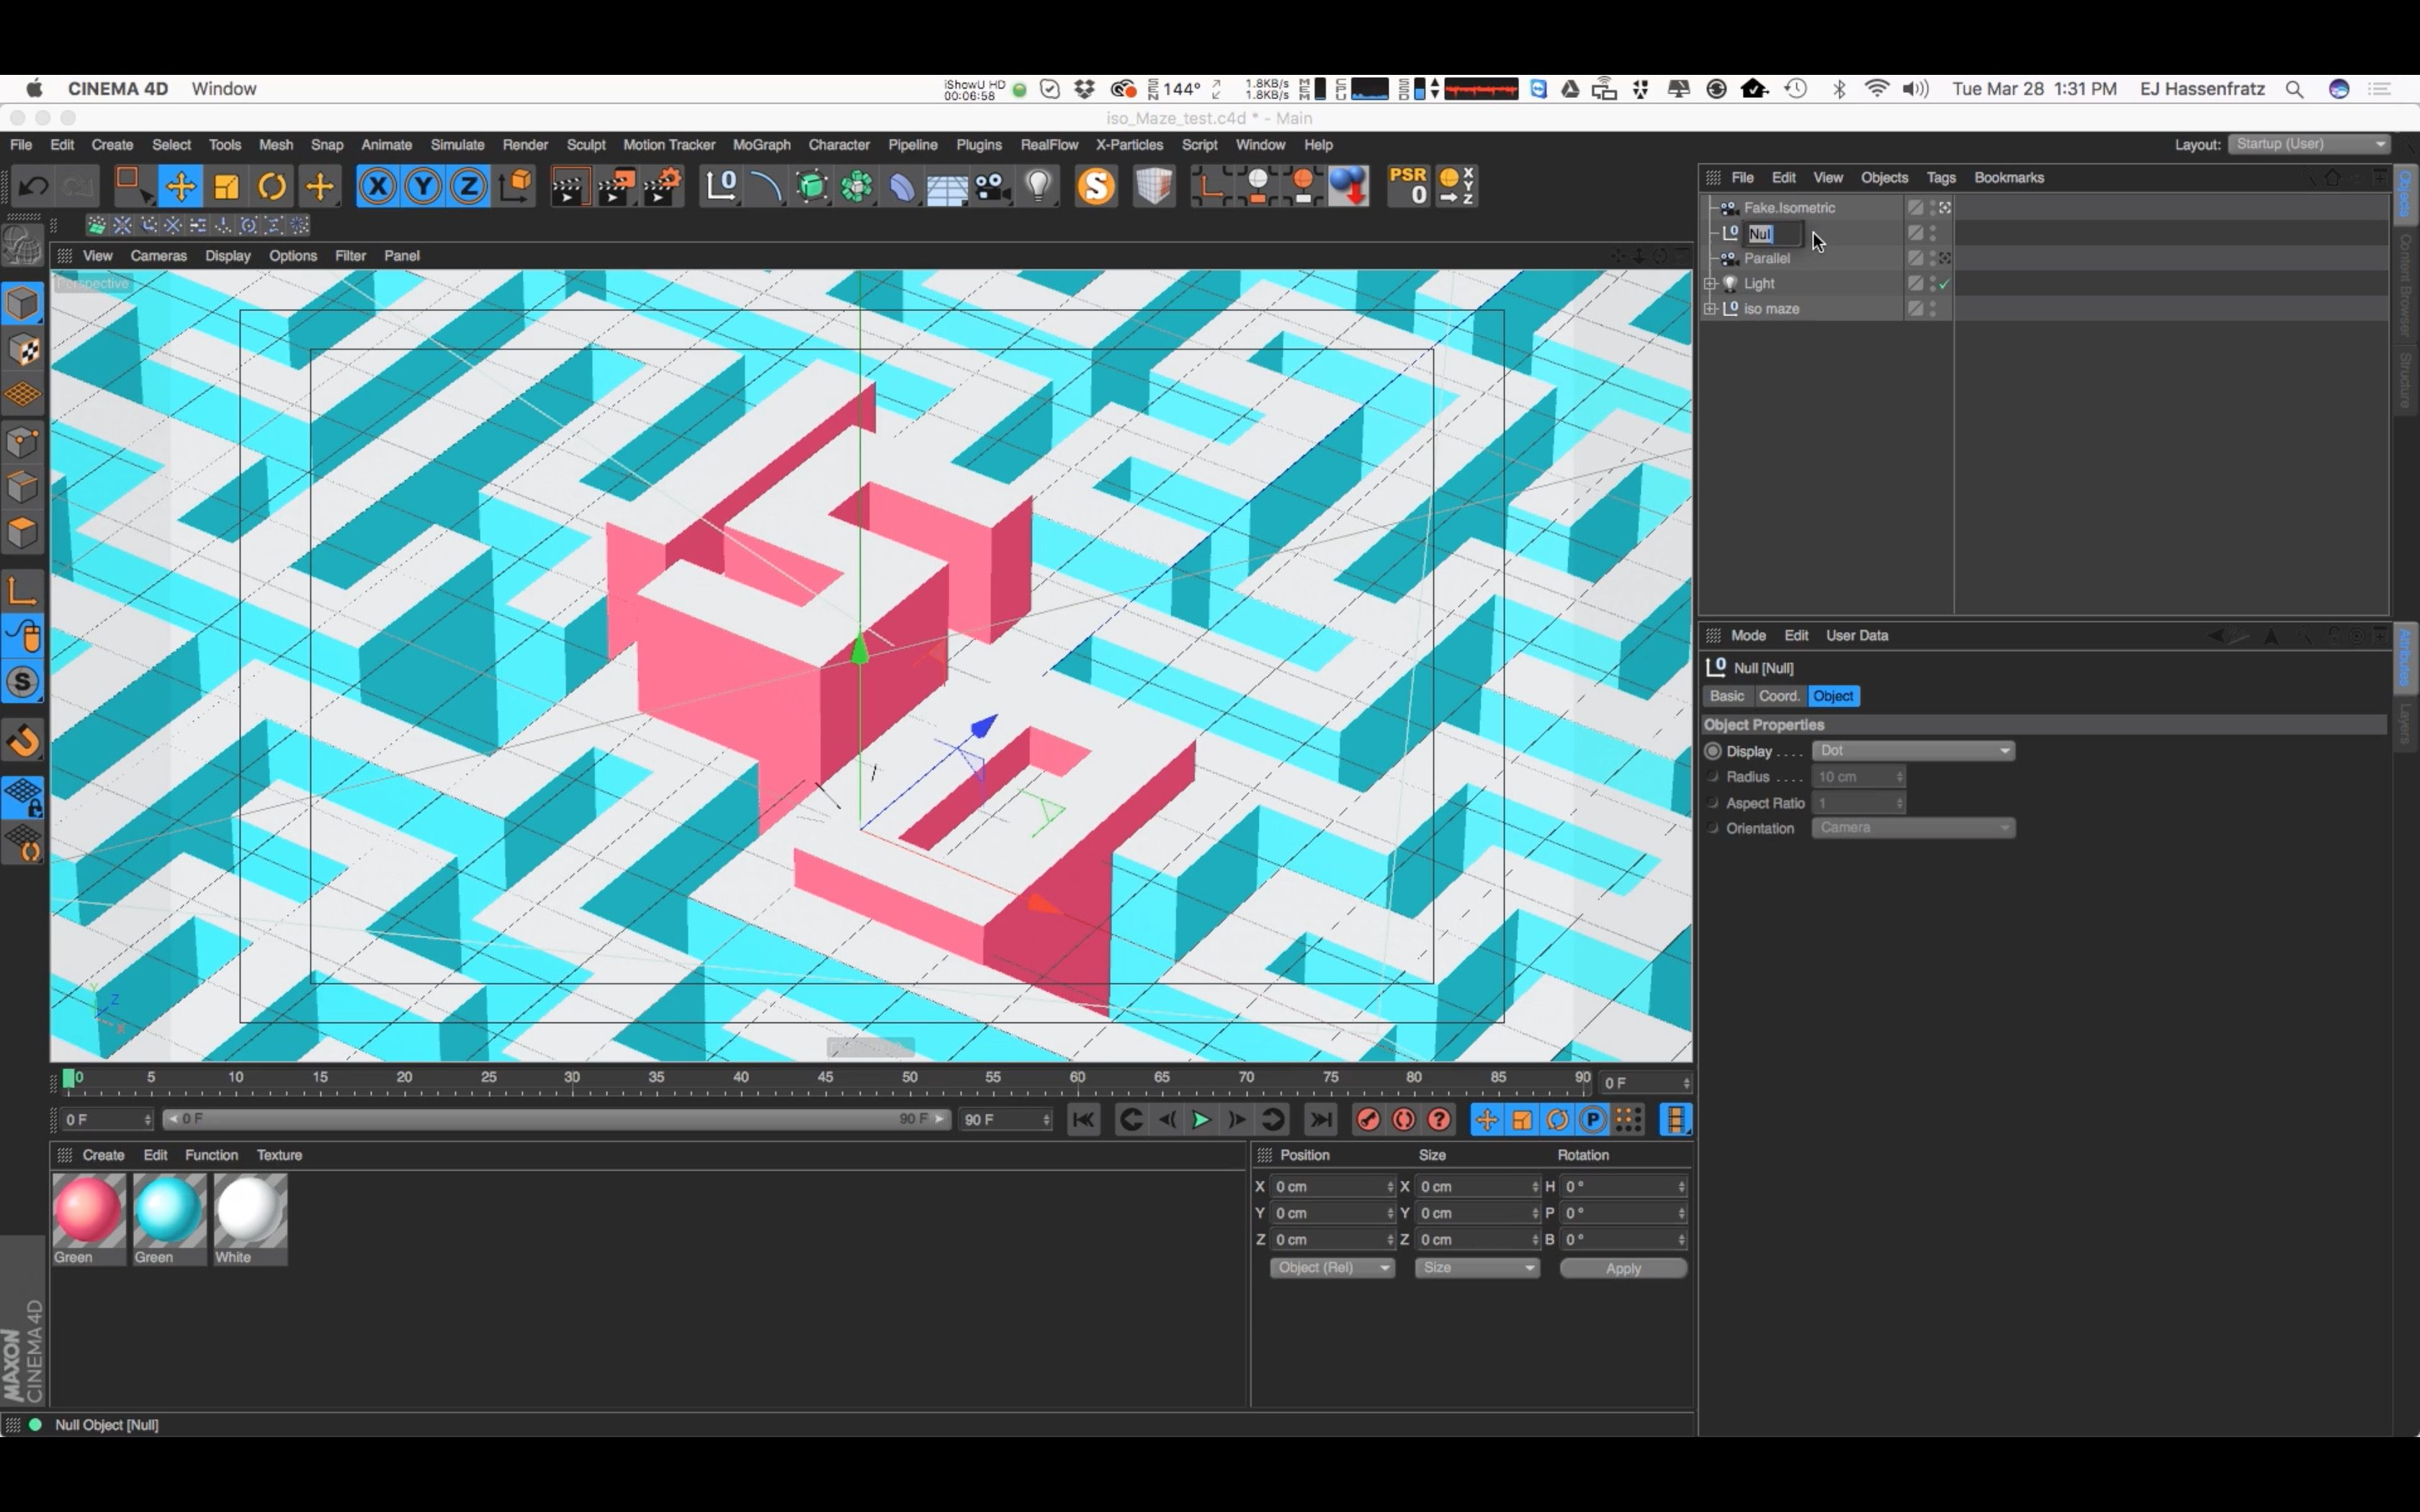 Tutorial: Creating 3D Isometric Animations in Cinema 4D